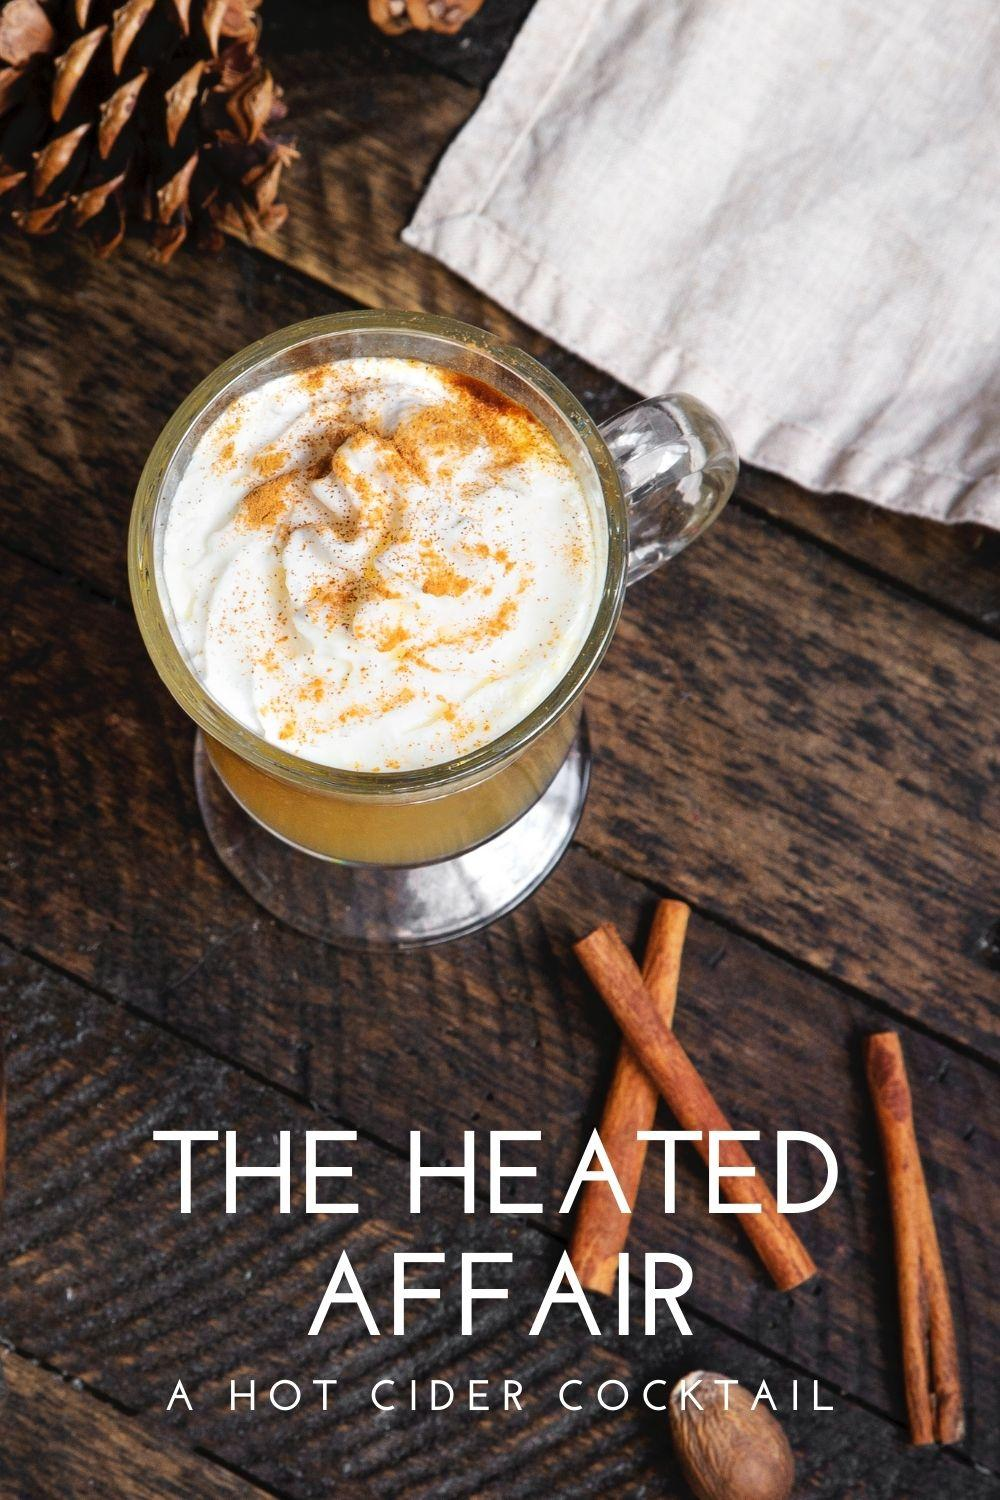 The Heated Affair Spiked Apple Cider Graphic